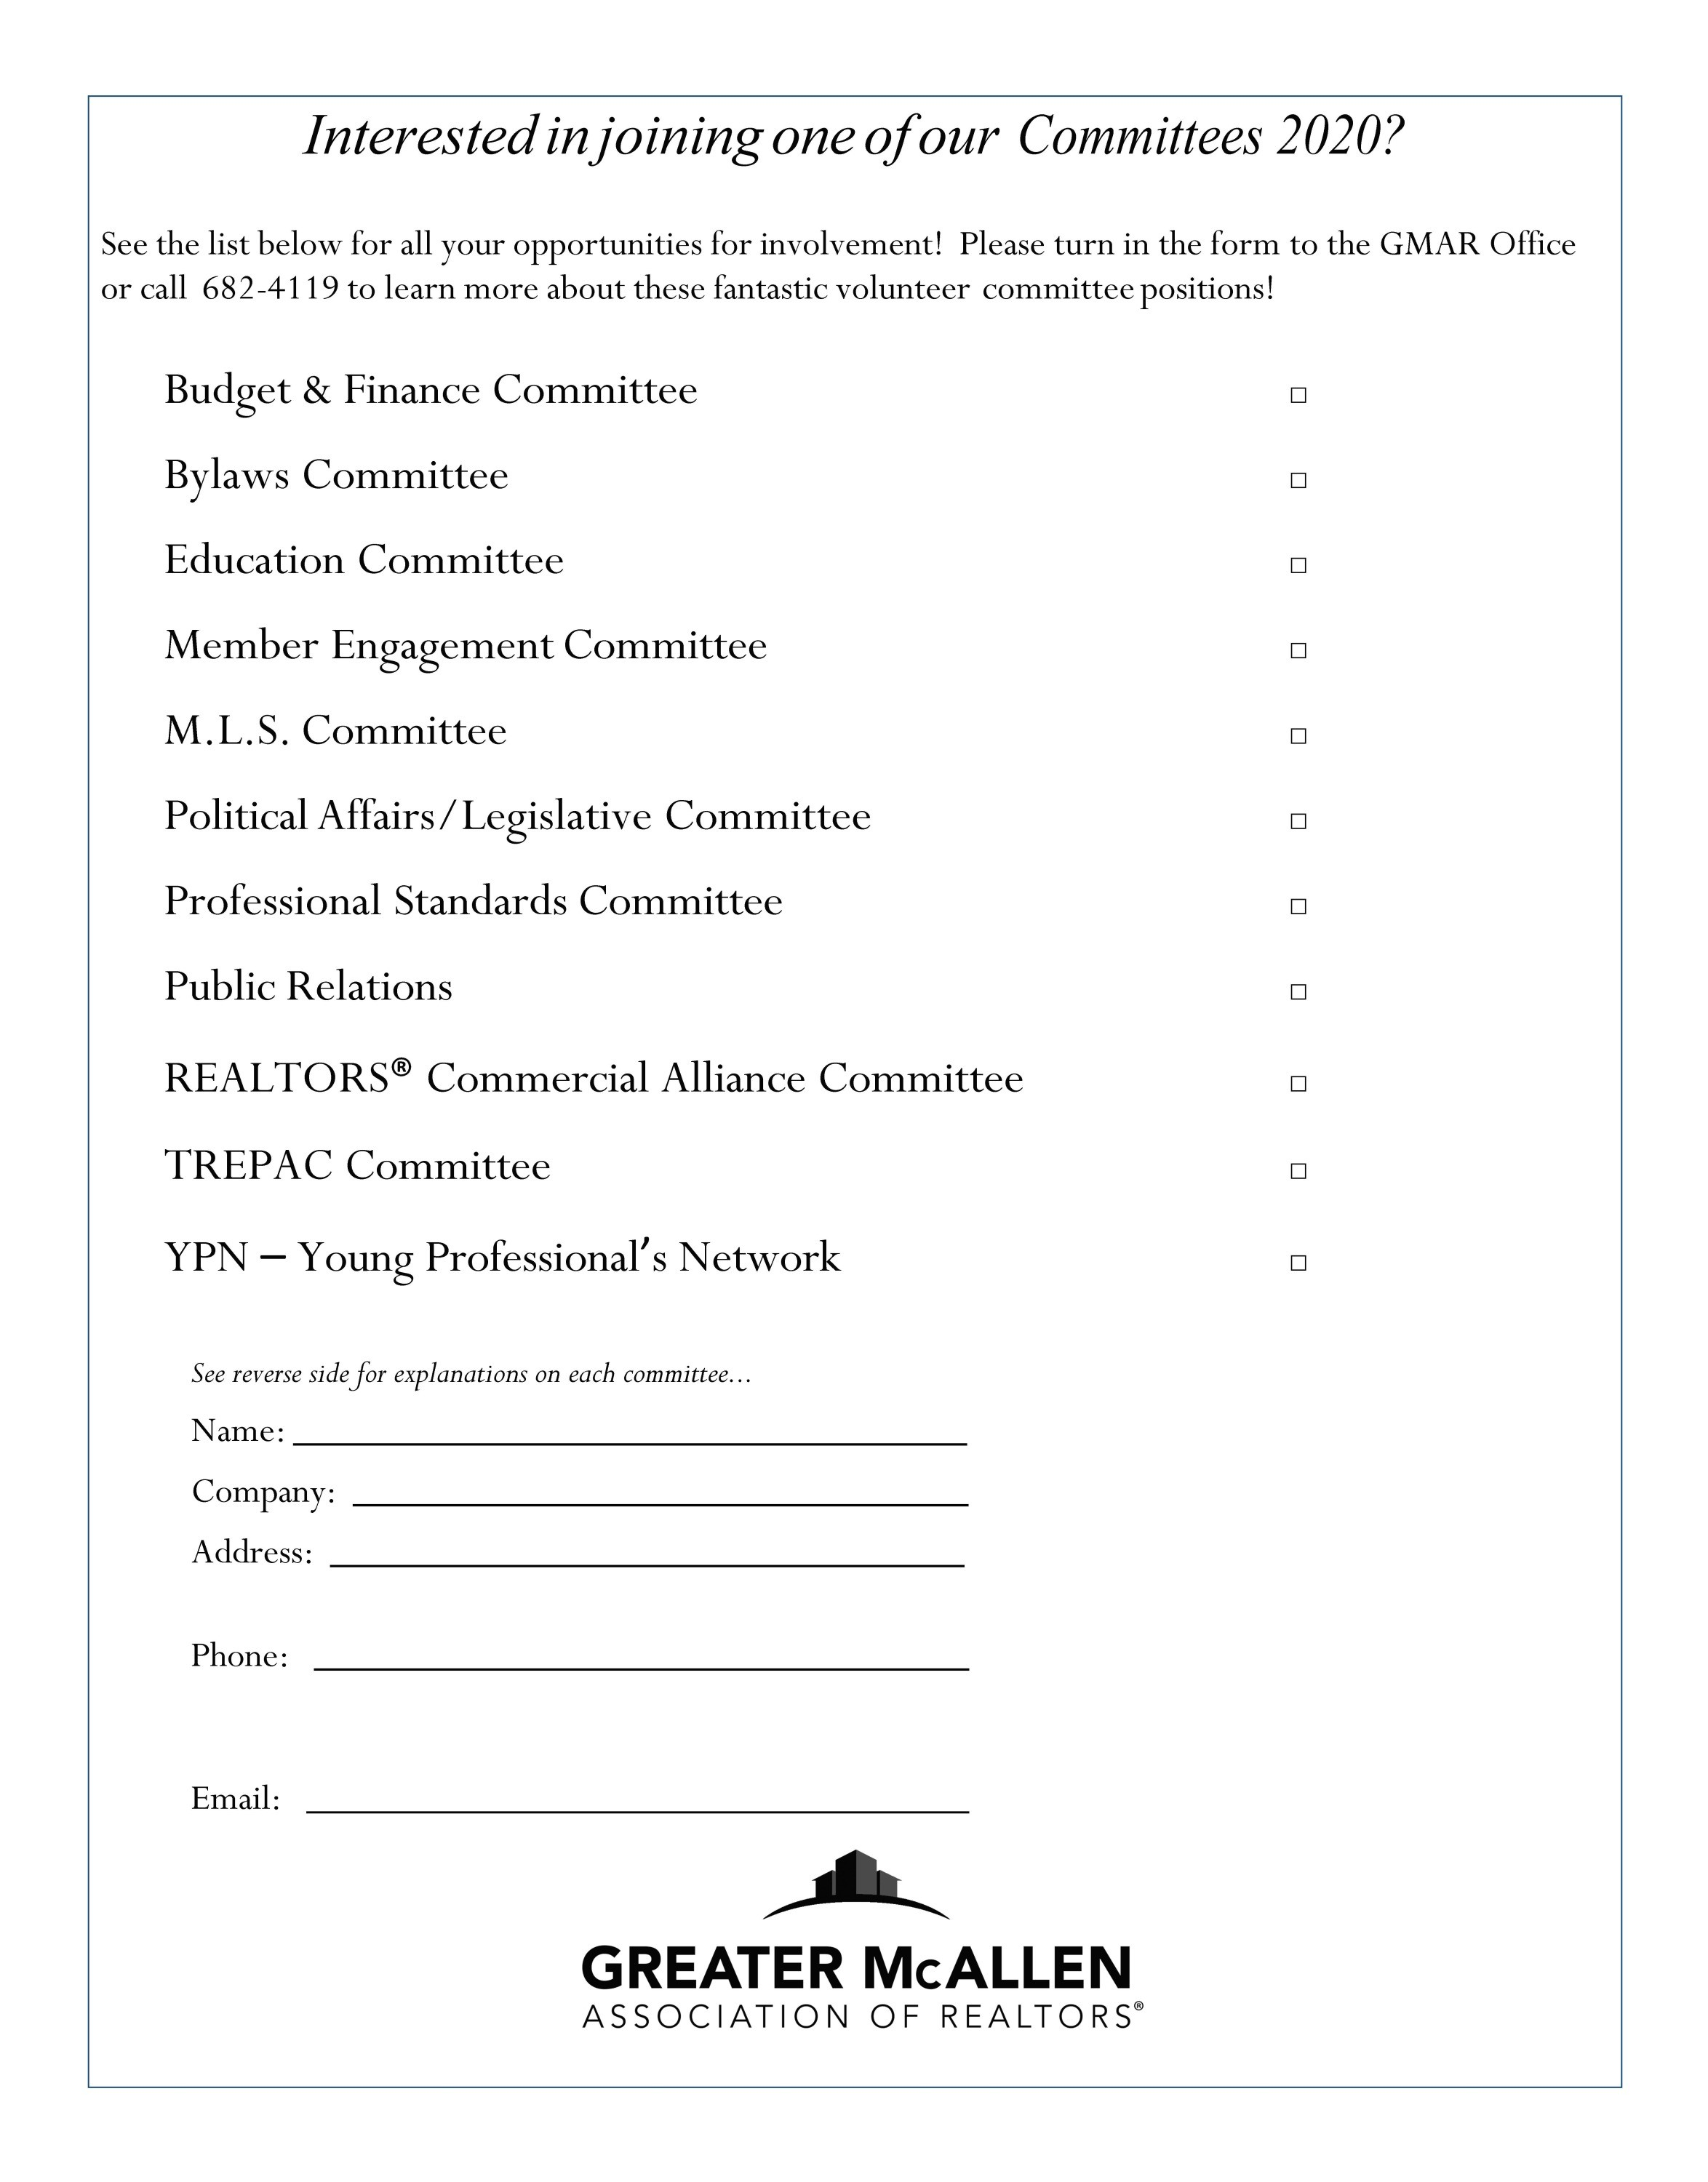 Join a committee! 2020 Greater McAllen Association of REALTORS® Committee Forms now available!